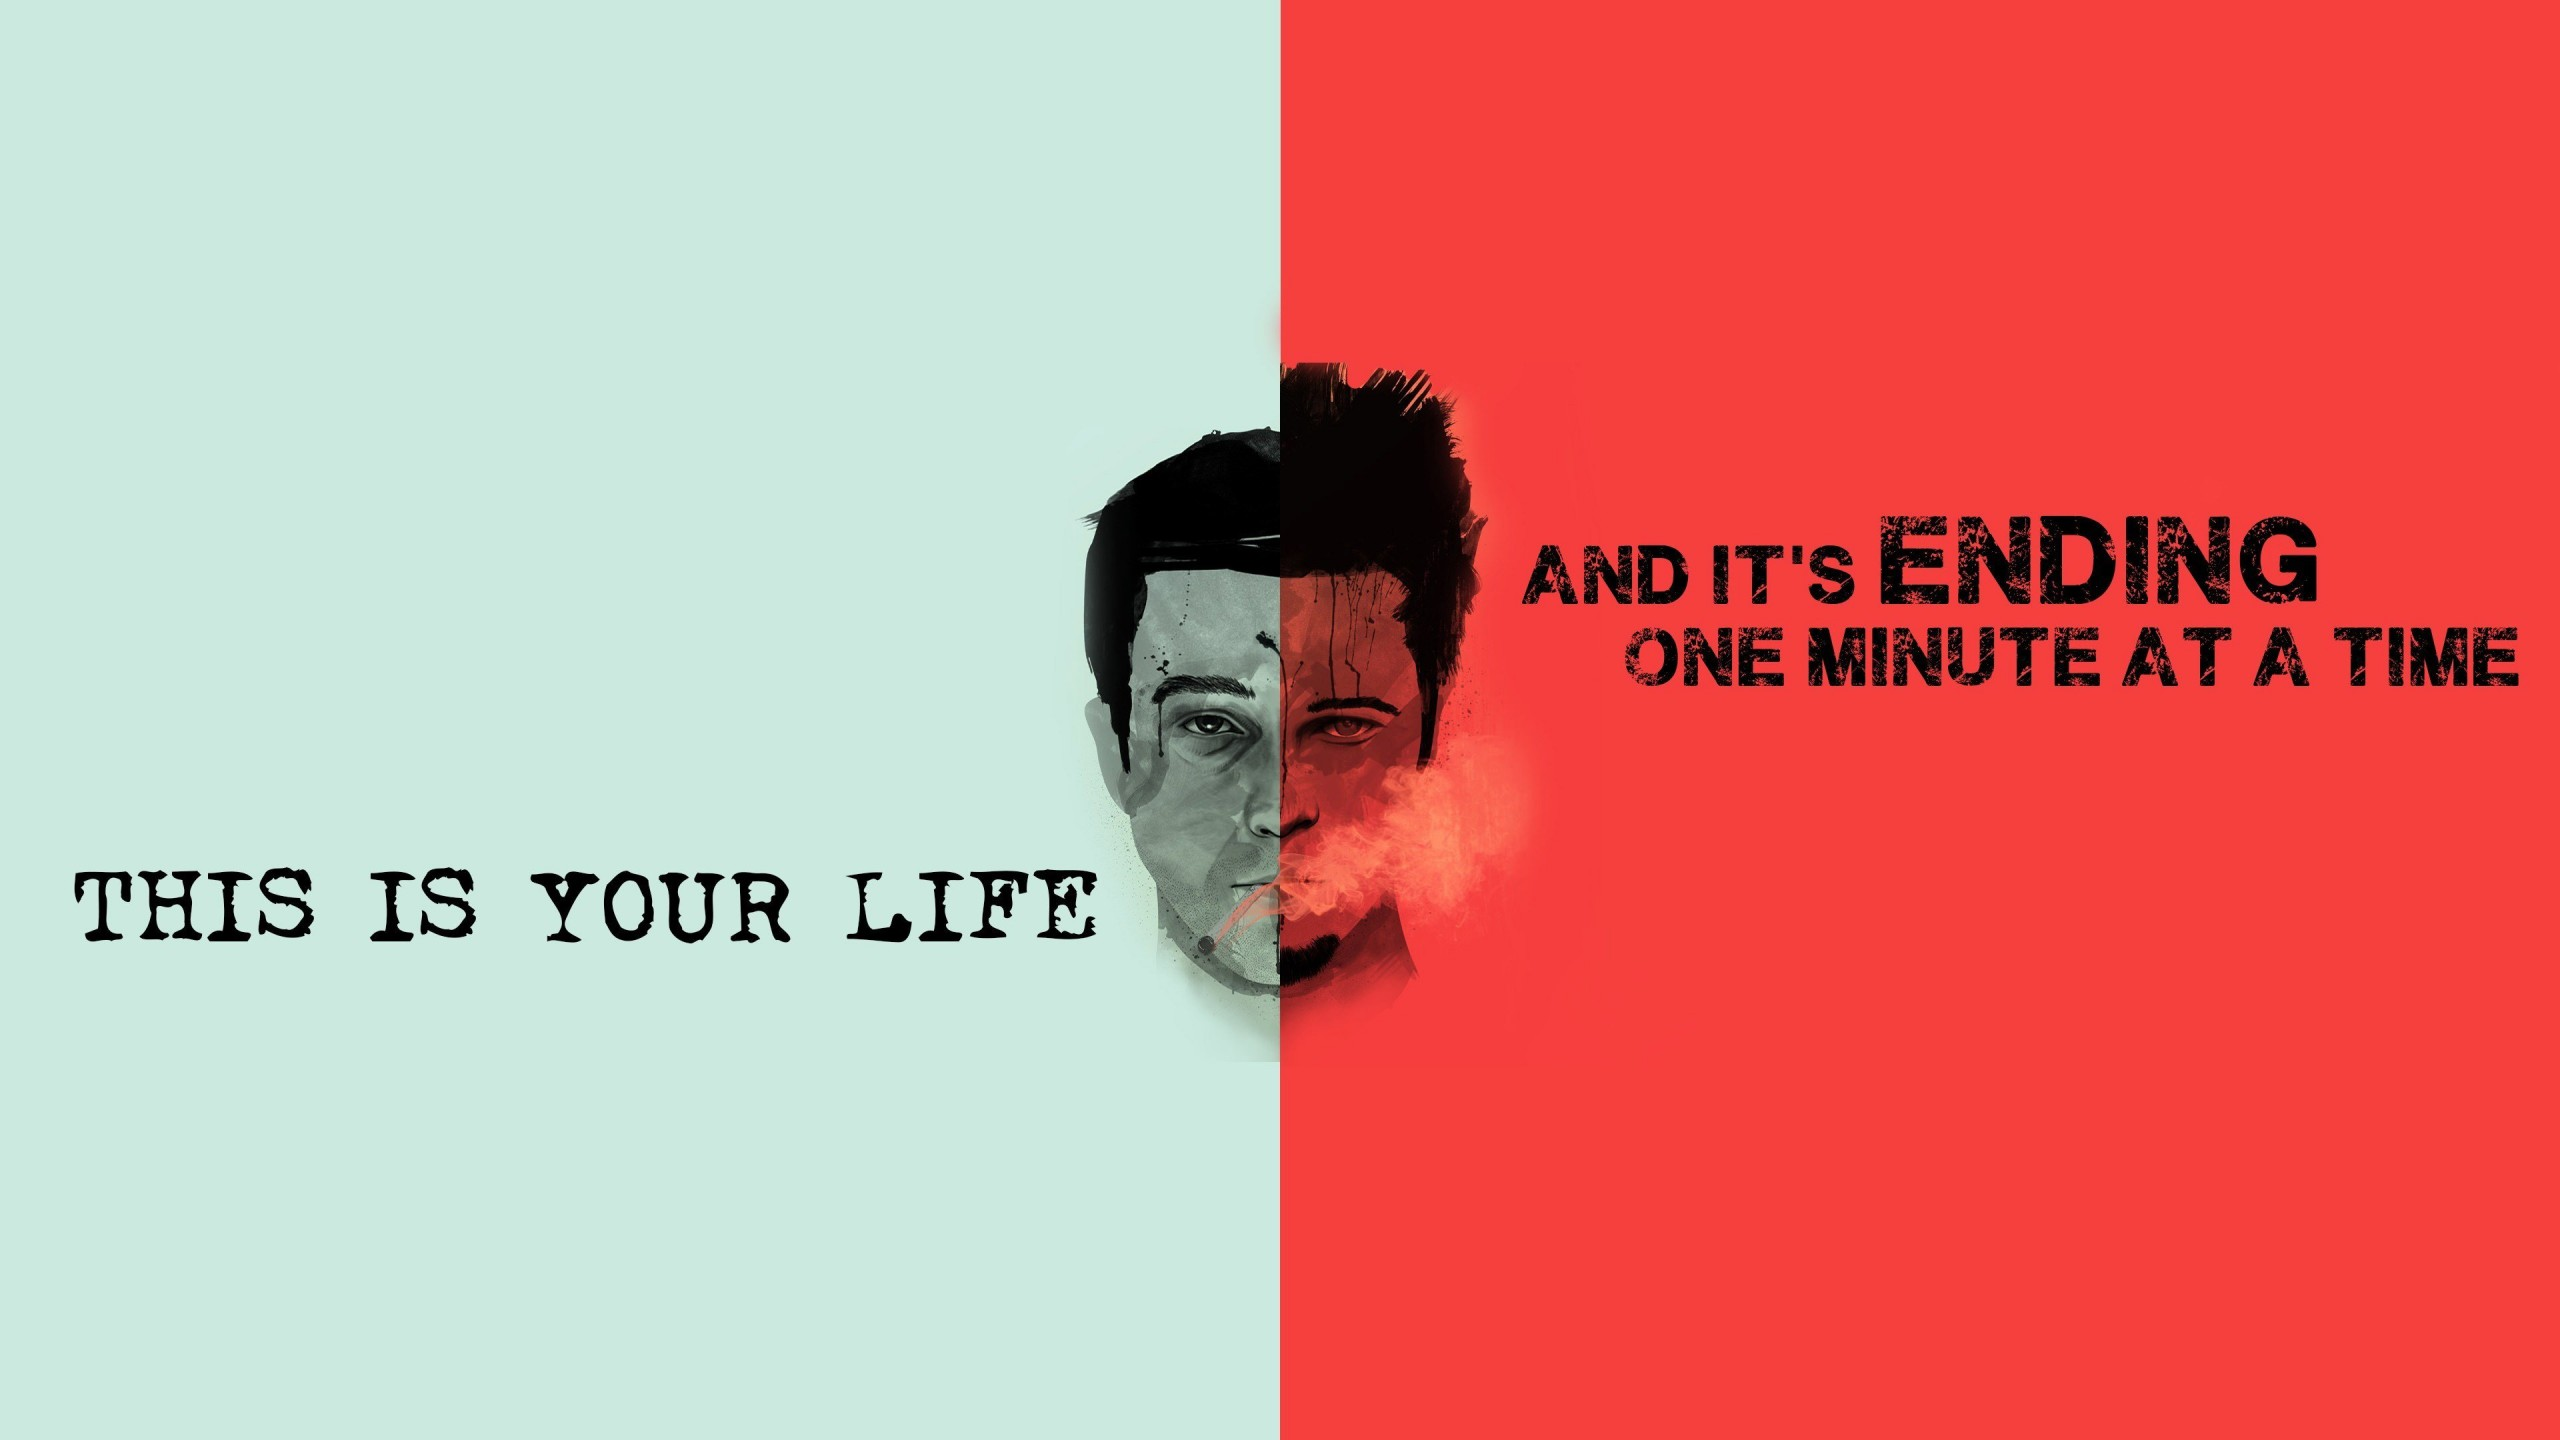 Fight Club Quote Wallpaper for Social Media YouTube Channel Art